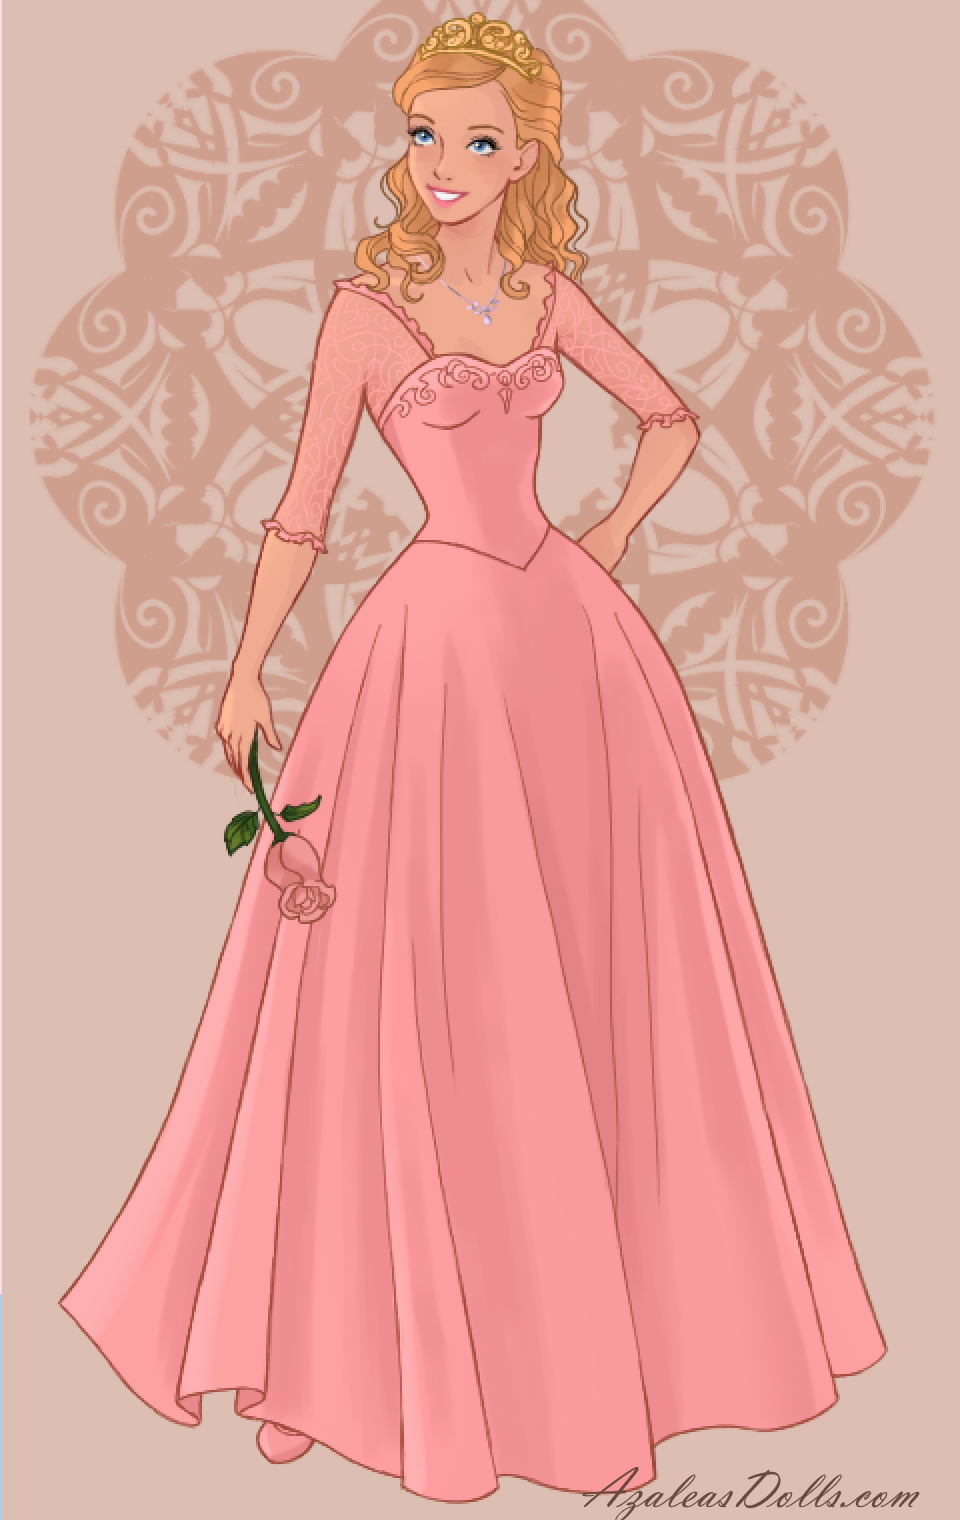 Wedding Dress Designers Game.Princess Anneliese From Barbie As The Princess And The Pauper In